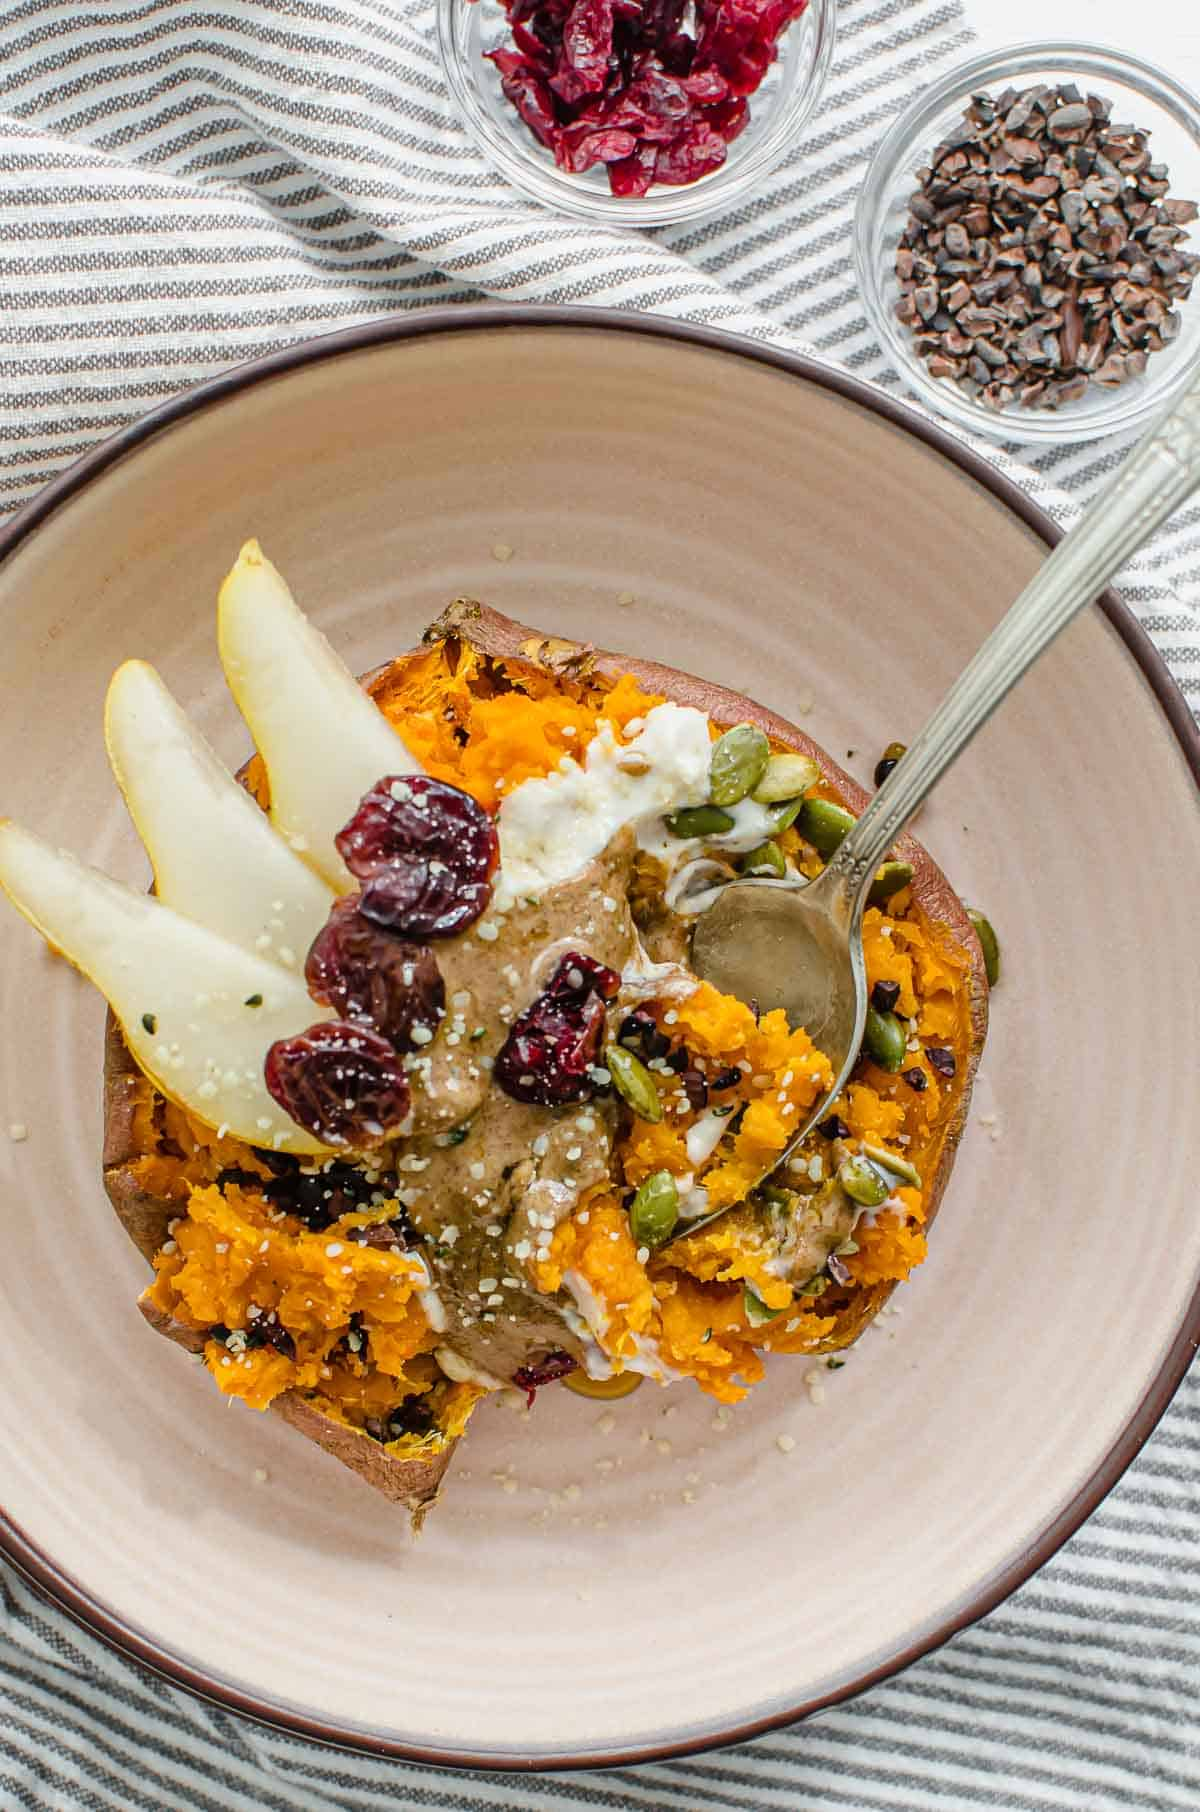 Birds eye view image of sweet potato breakfast bowl with cacao nibs and cranberries on the side.